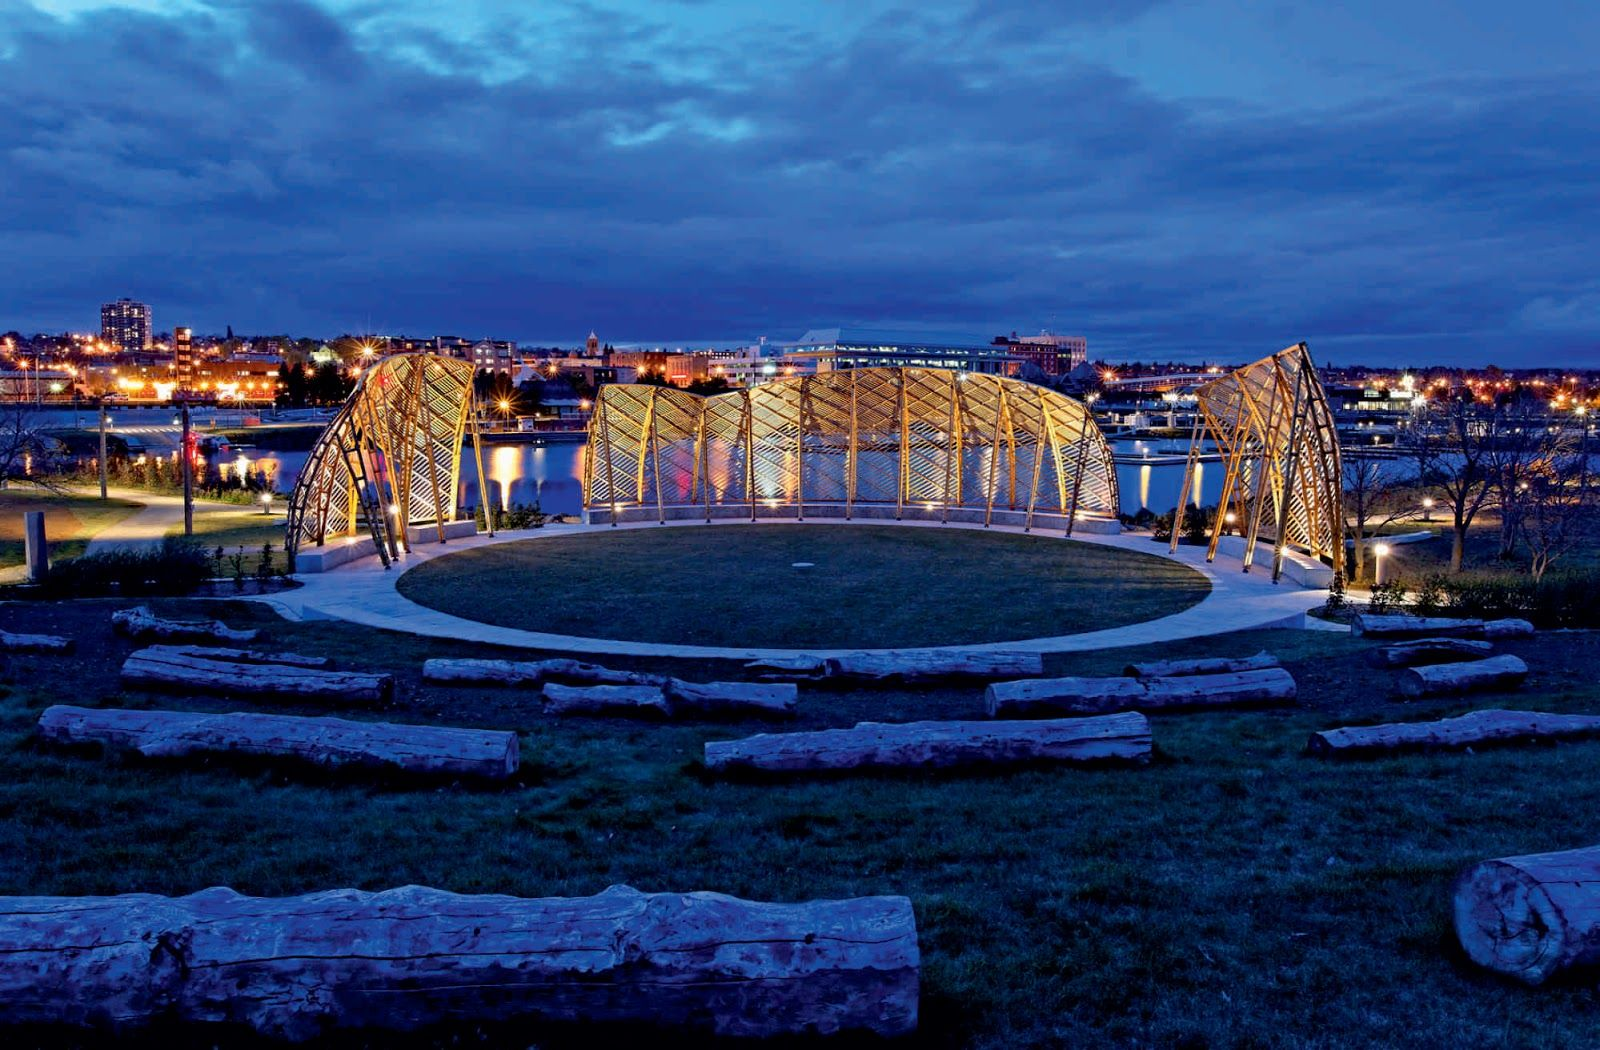 The Gathering Circle is the main structure within this Spirit Garden, and gives expression to the deep cultural and historic roots that link Aboriginal peoples to the Lake Superior shoreline. Its design reflects an adaptation of a traditional Aboriginal bentwood building technique